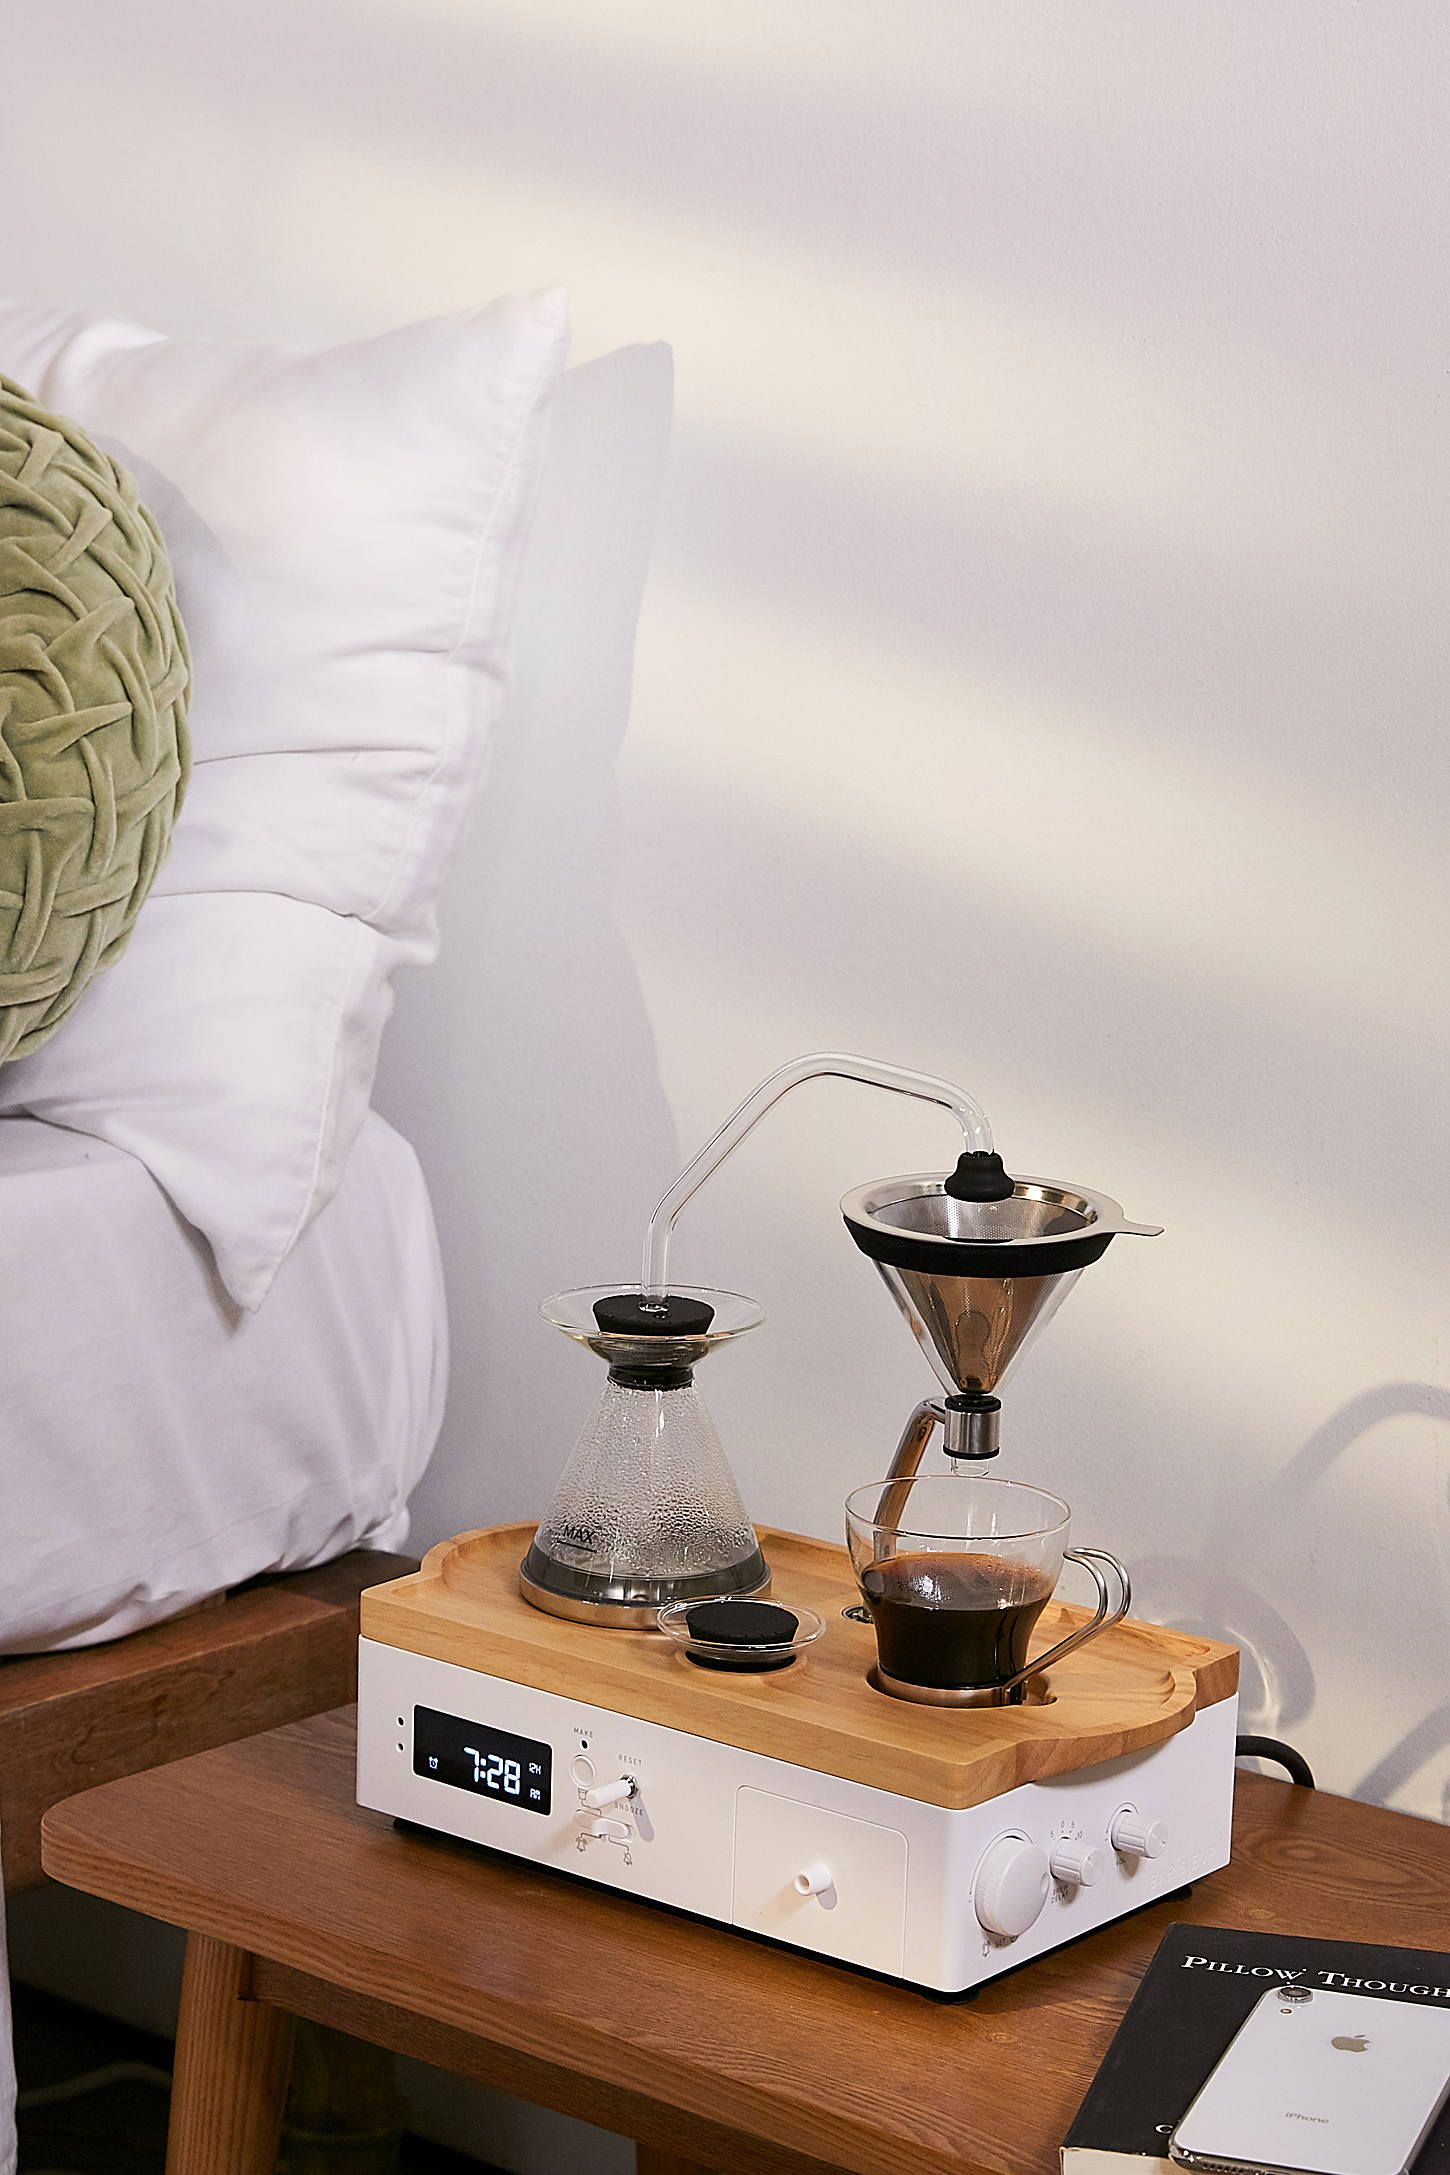 Barisieur coffee brewing alarm clock with images